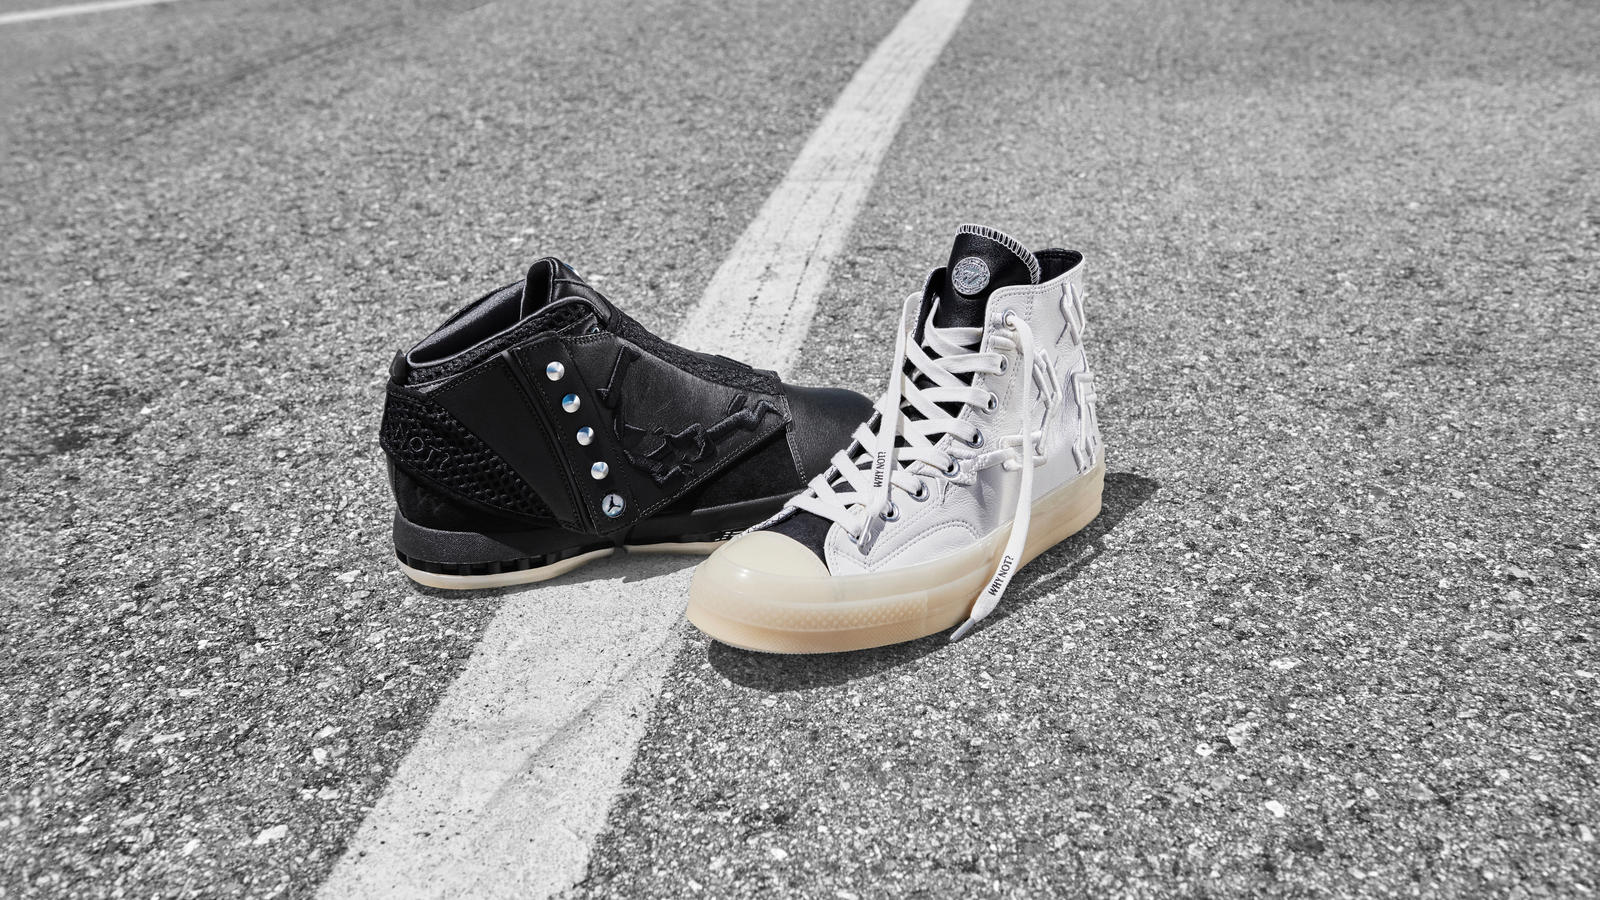 russell-westbrook-air-jordan-16-converse-chuck-70-official-images-and-release-date